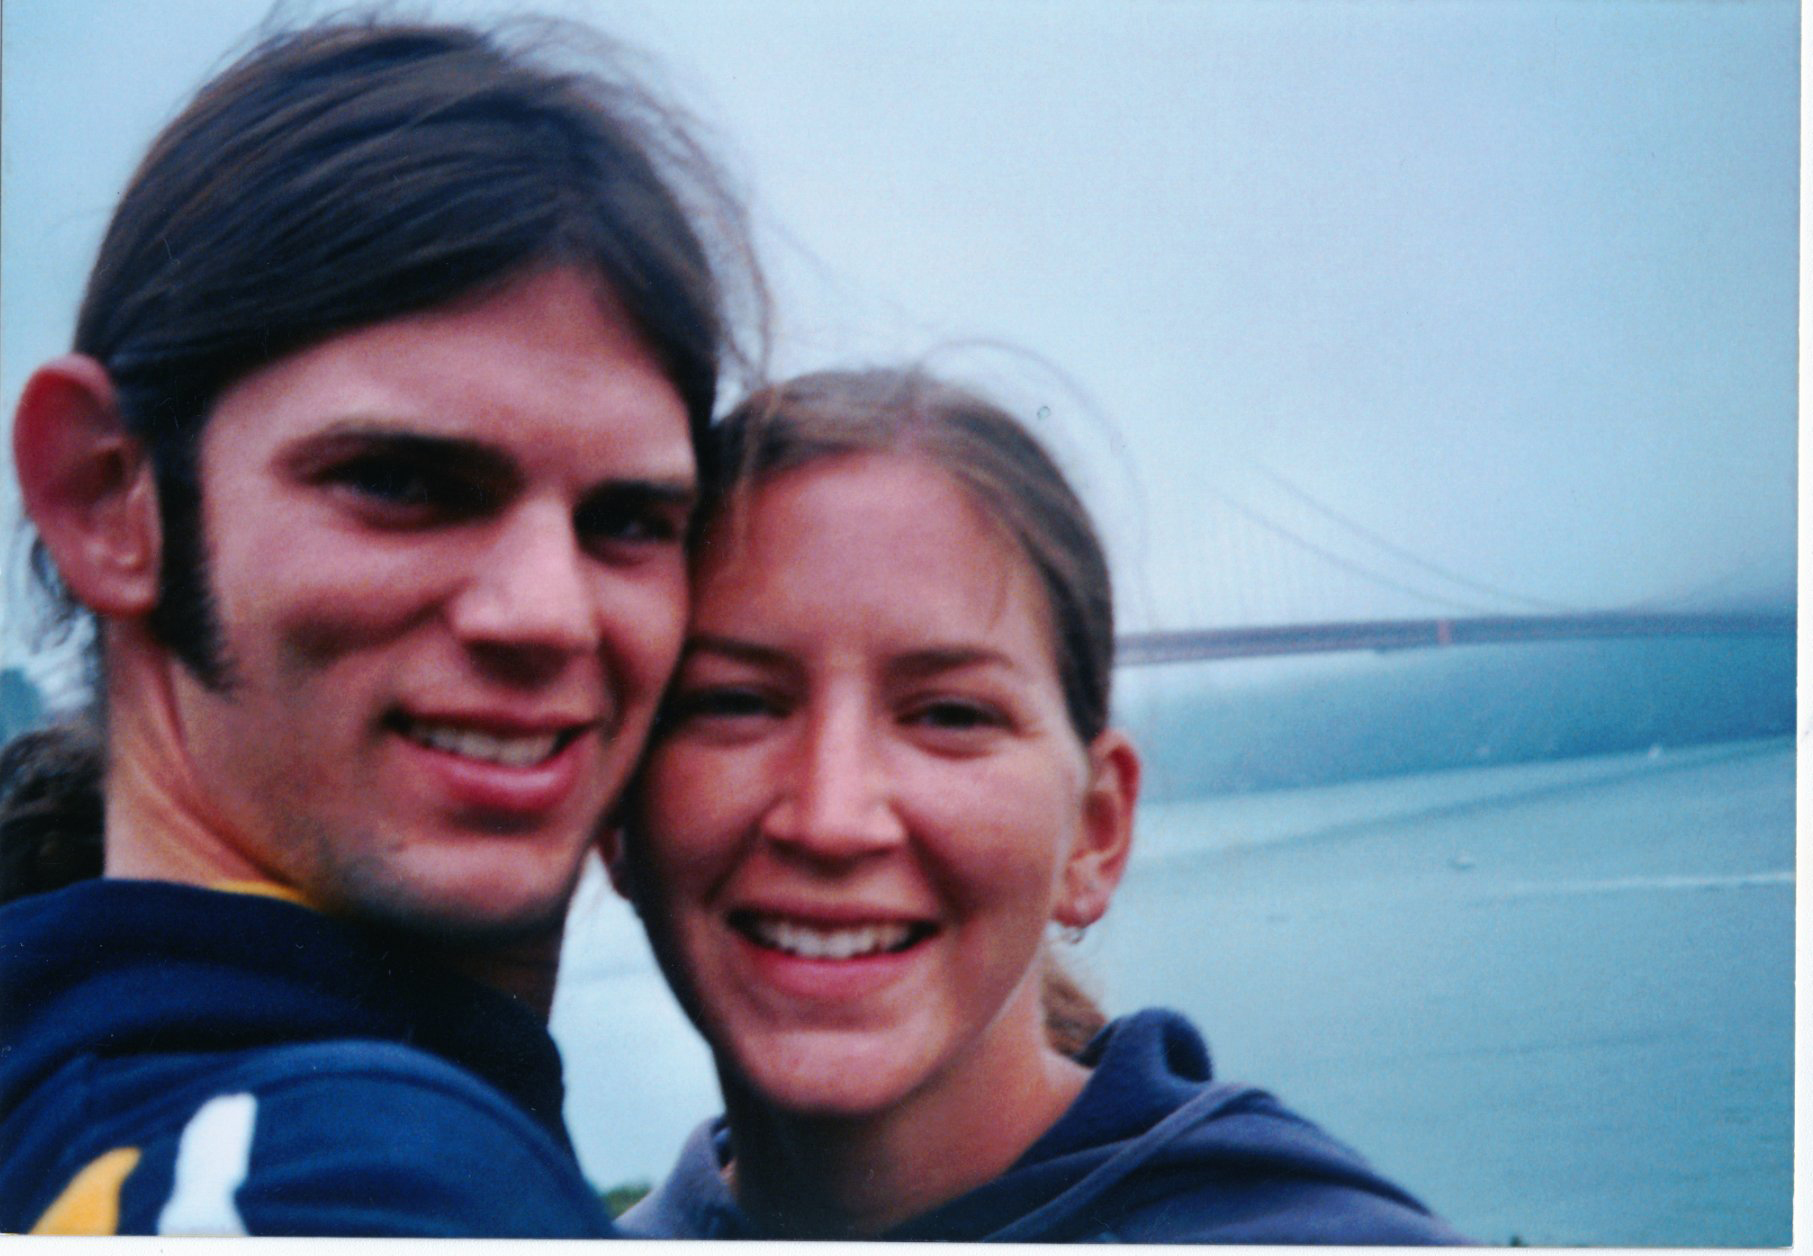 A photo the couple took not longer before their murder.